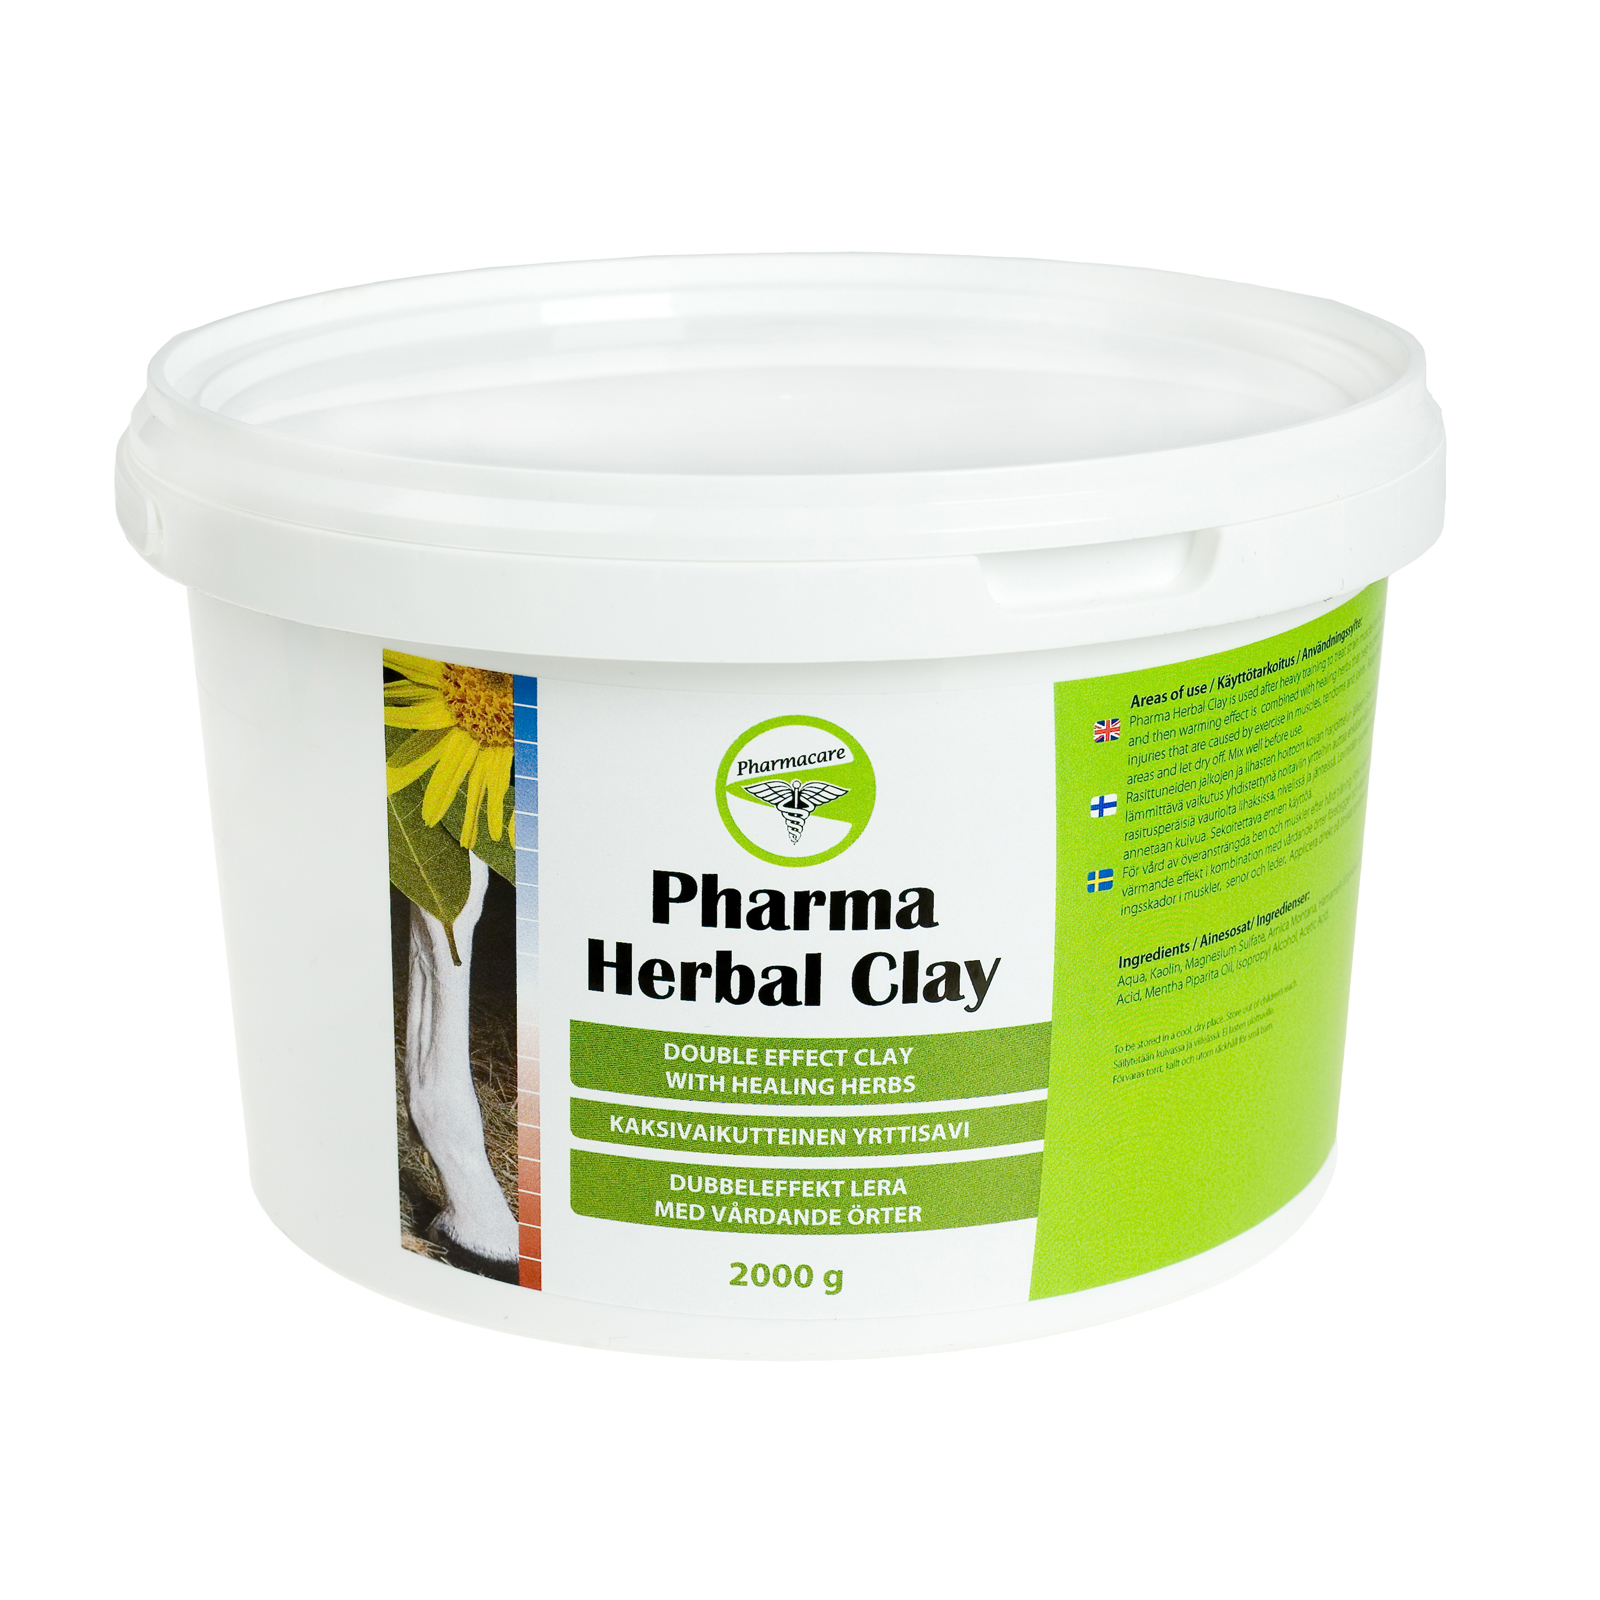 Pharma Herbal Clay 4x2kg